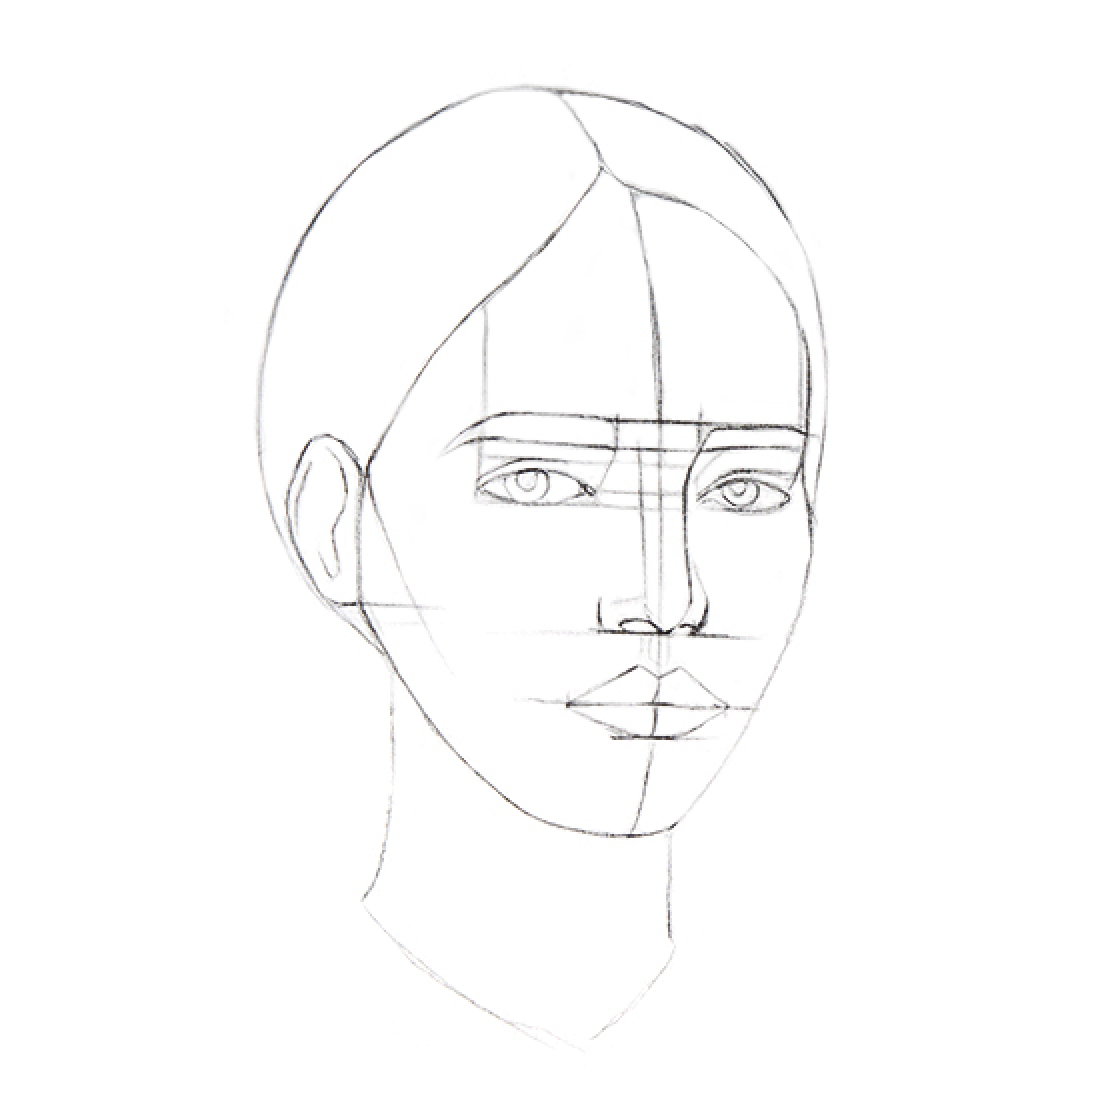 How to Draw a Head - Step 3